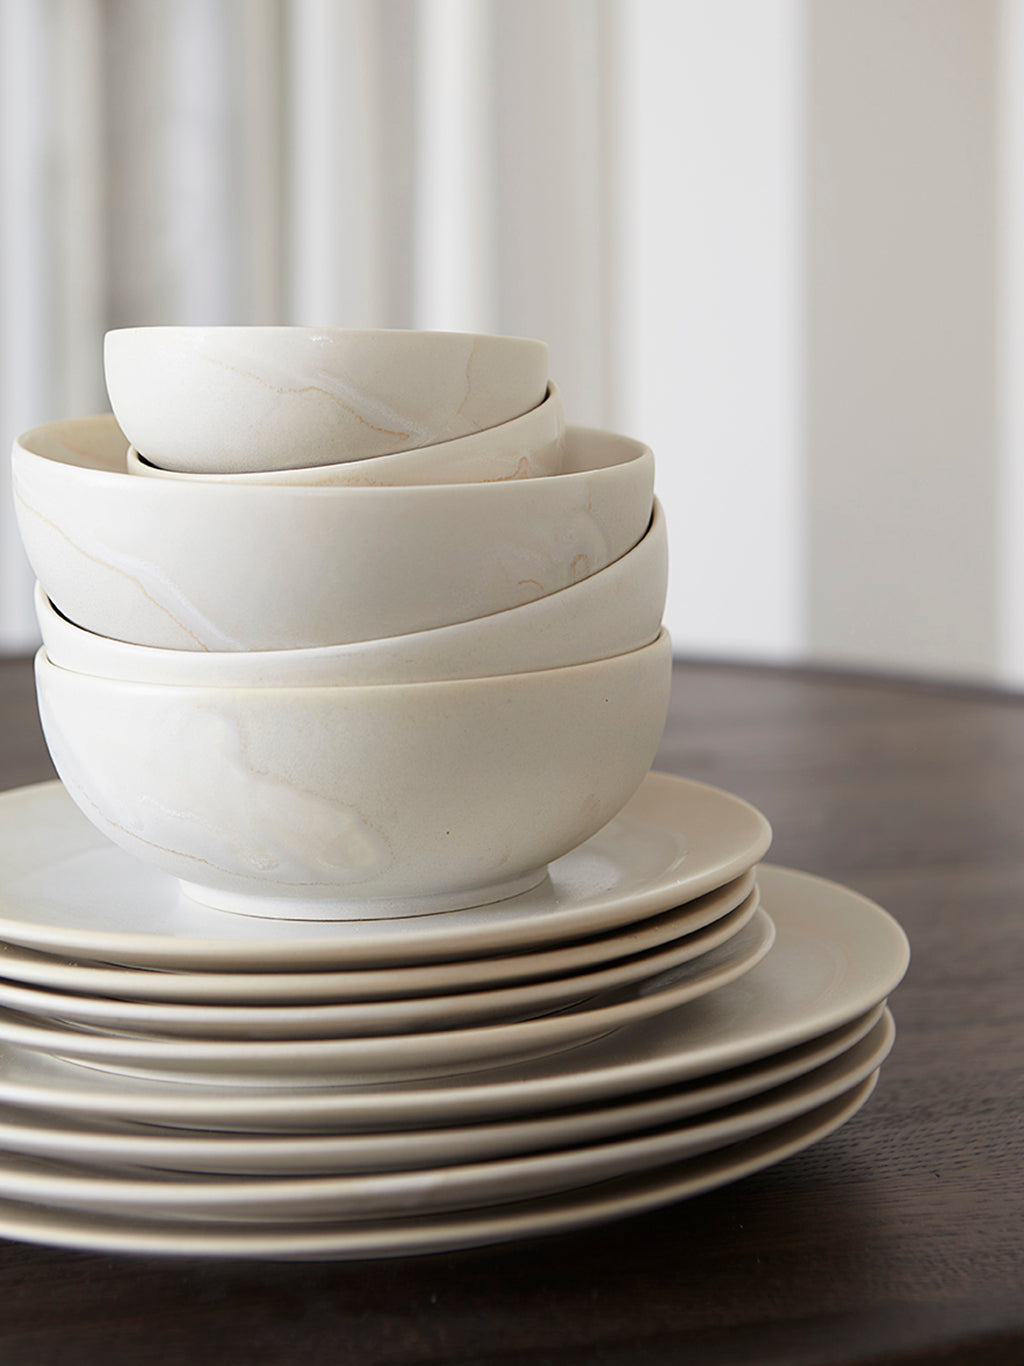 The Melk Ceramic collection by Pagina Design _ The Fine Store